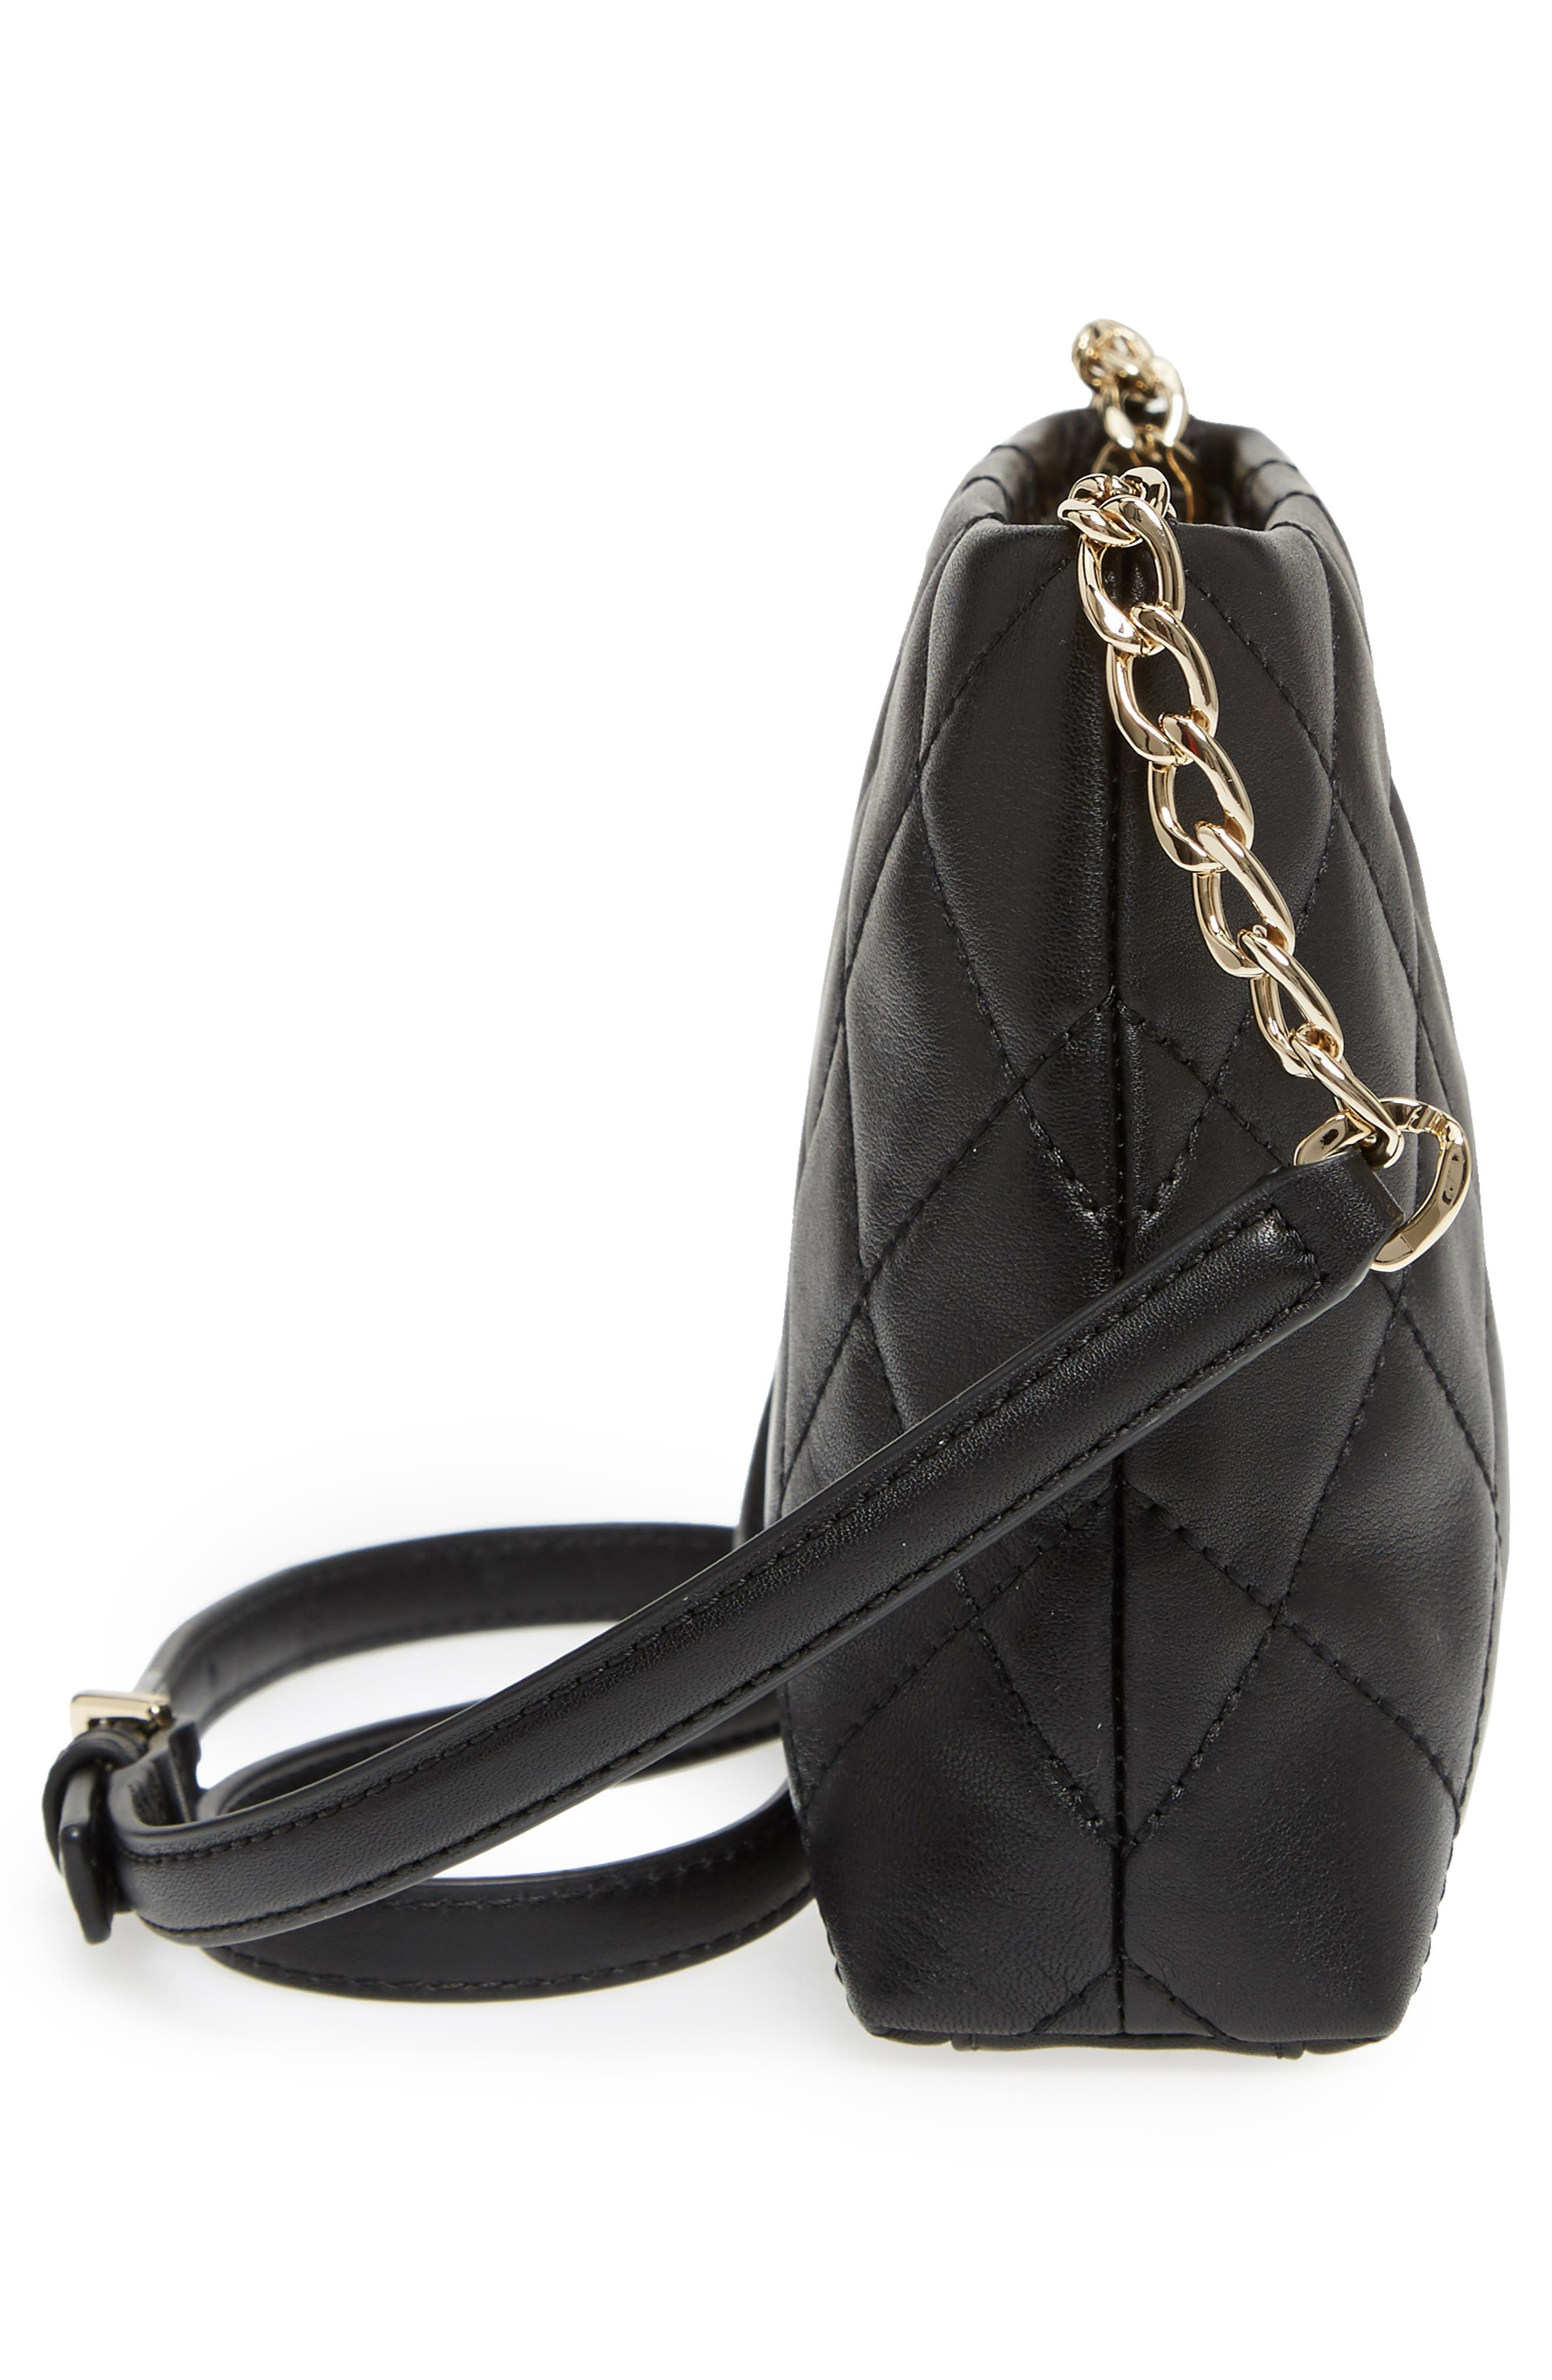 KATE SPADE NEW YORK,                             emerson place caterina leather crossbody bag,                             Alternate thumbnail 5, color,                             001